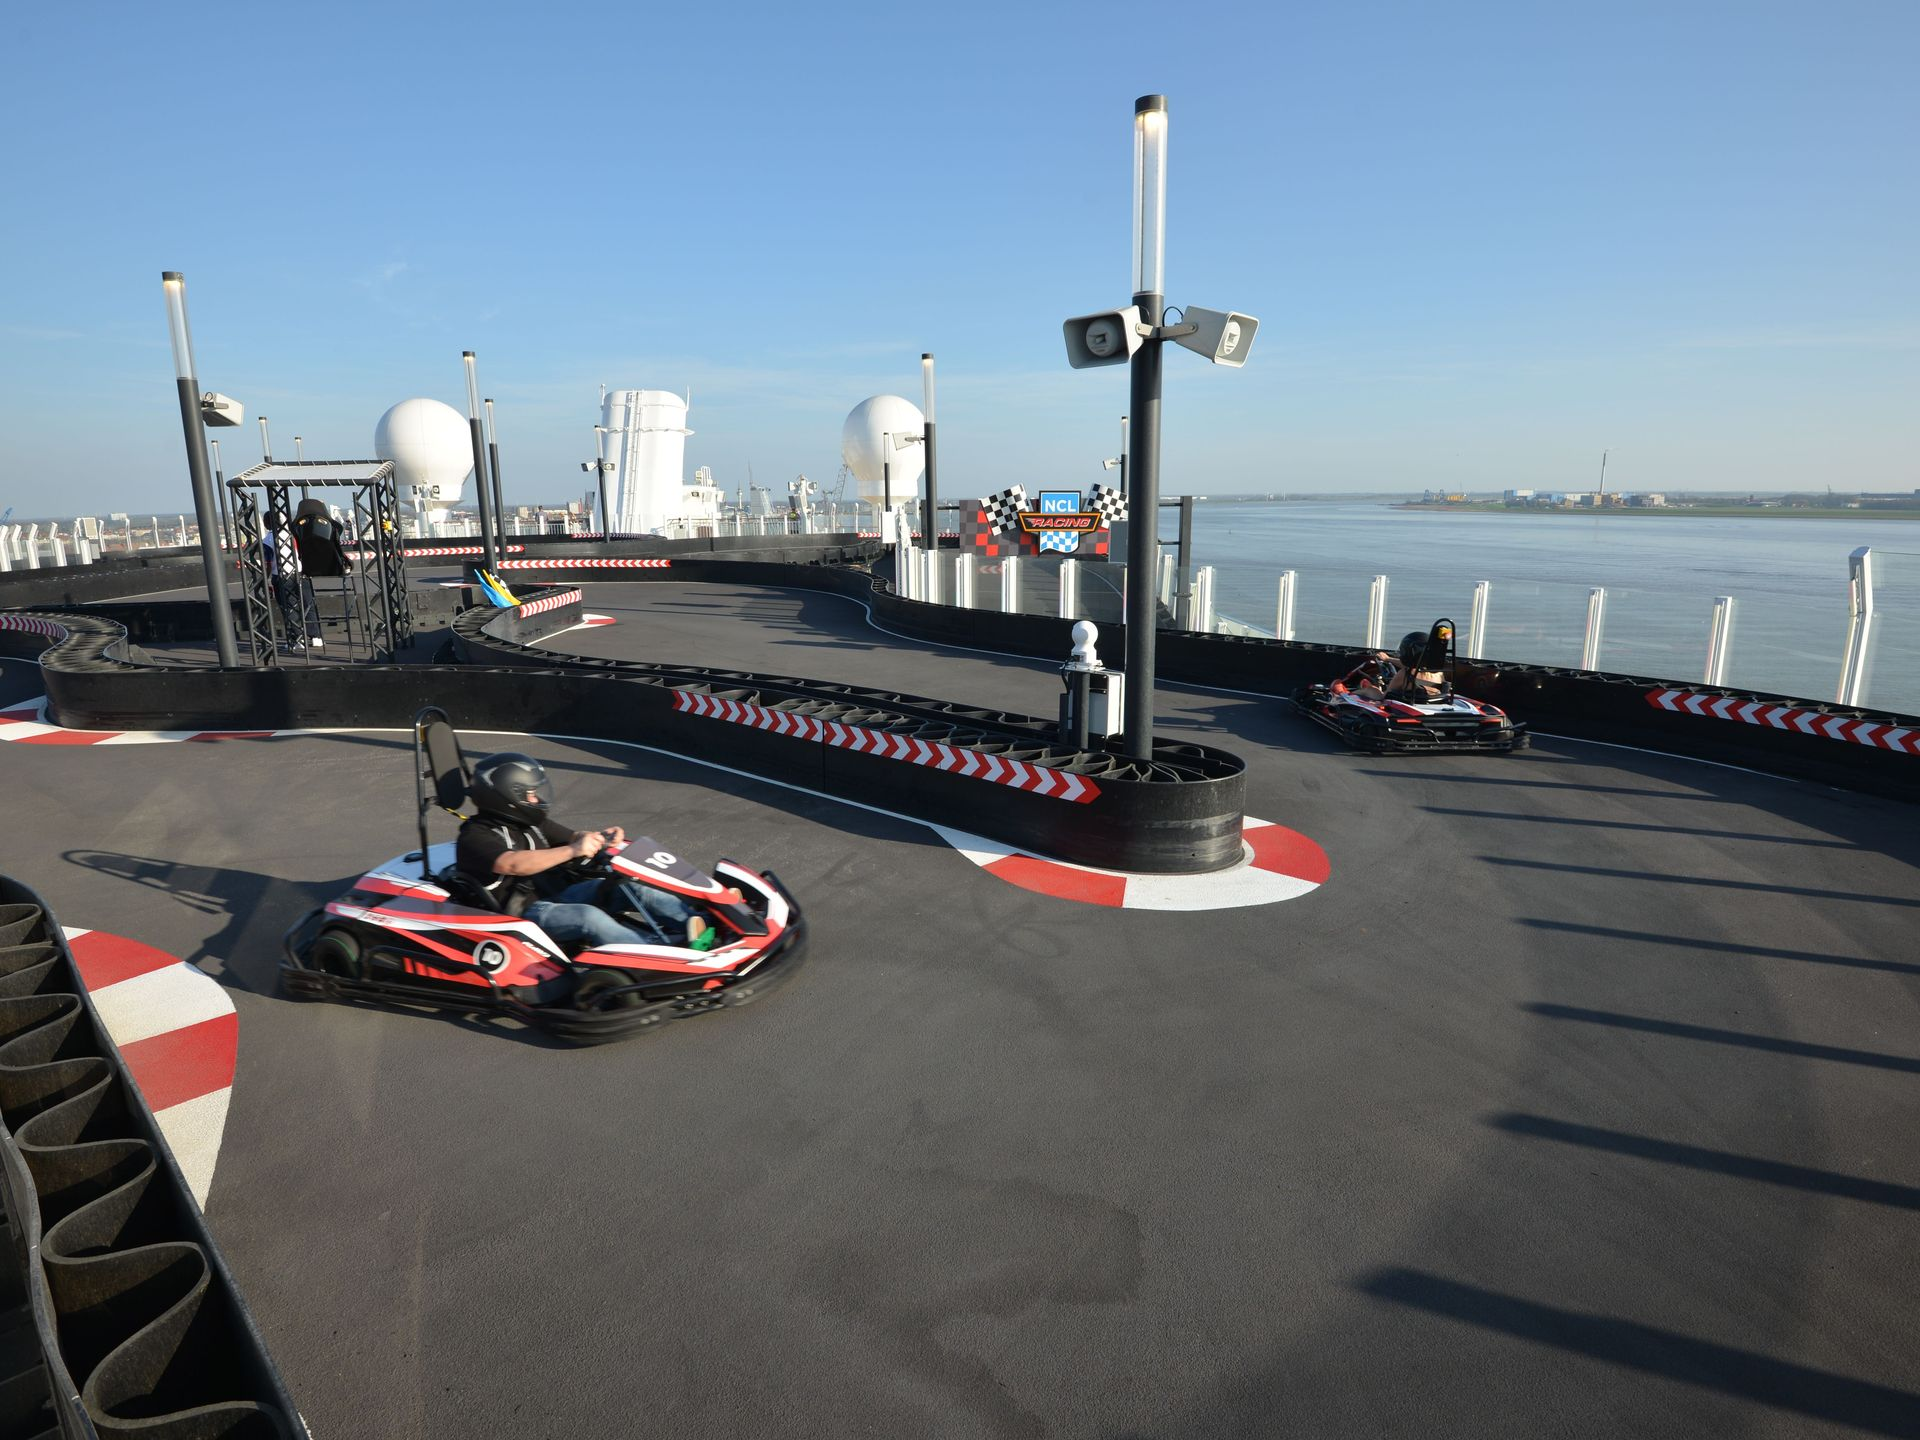 Racing on Water: This Cruise Ship Has a 1,000FT Go-Kart ...